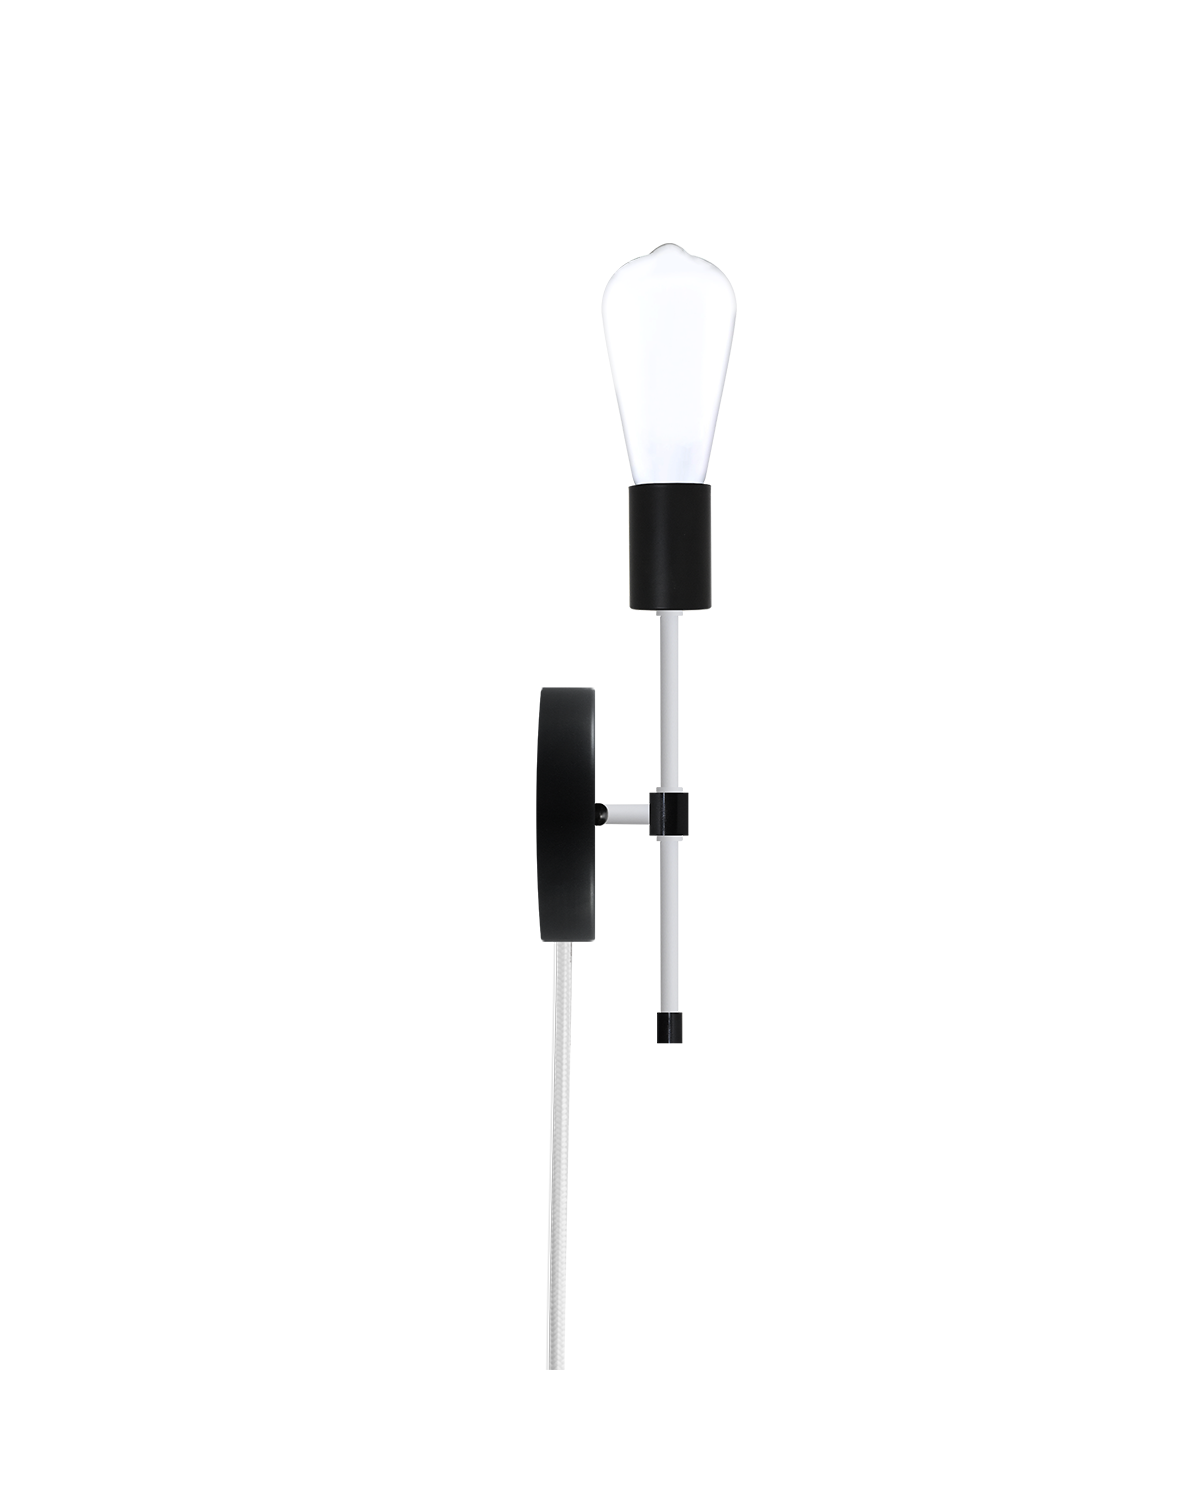 Plug-In Torch Wall Sconce: Black and White Hangout Lighting